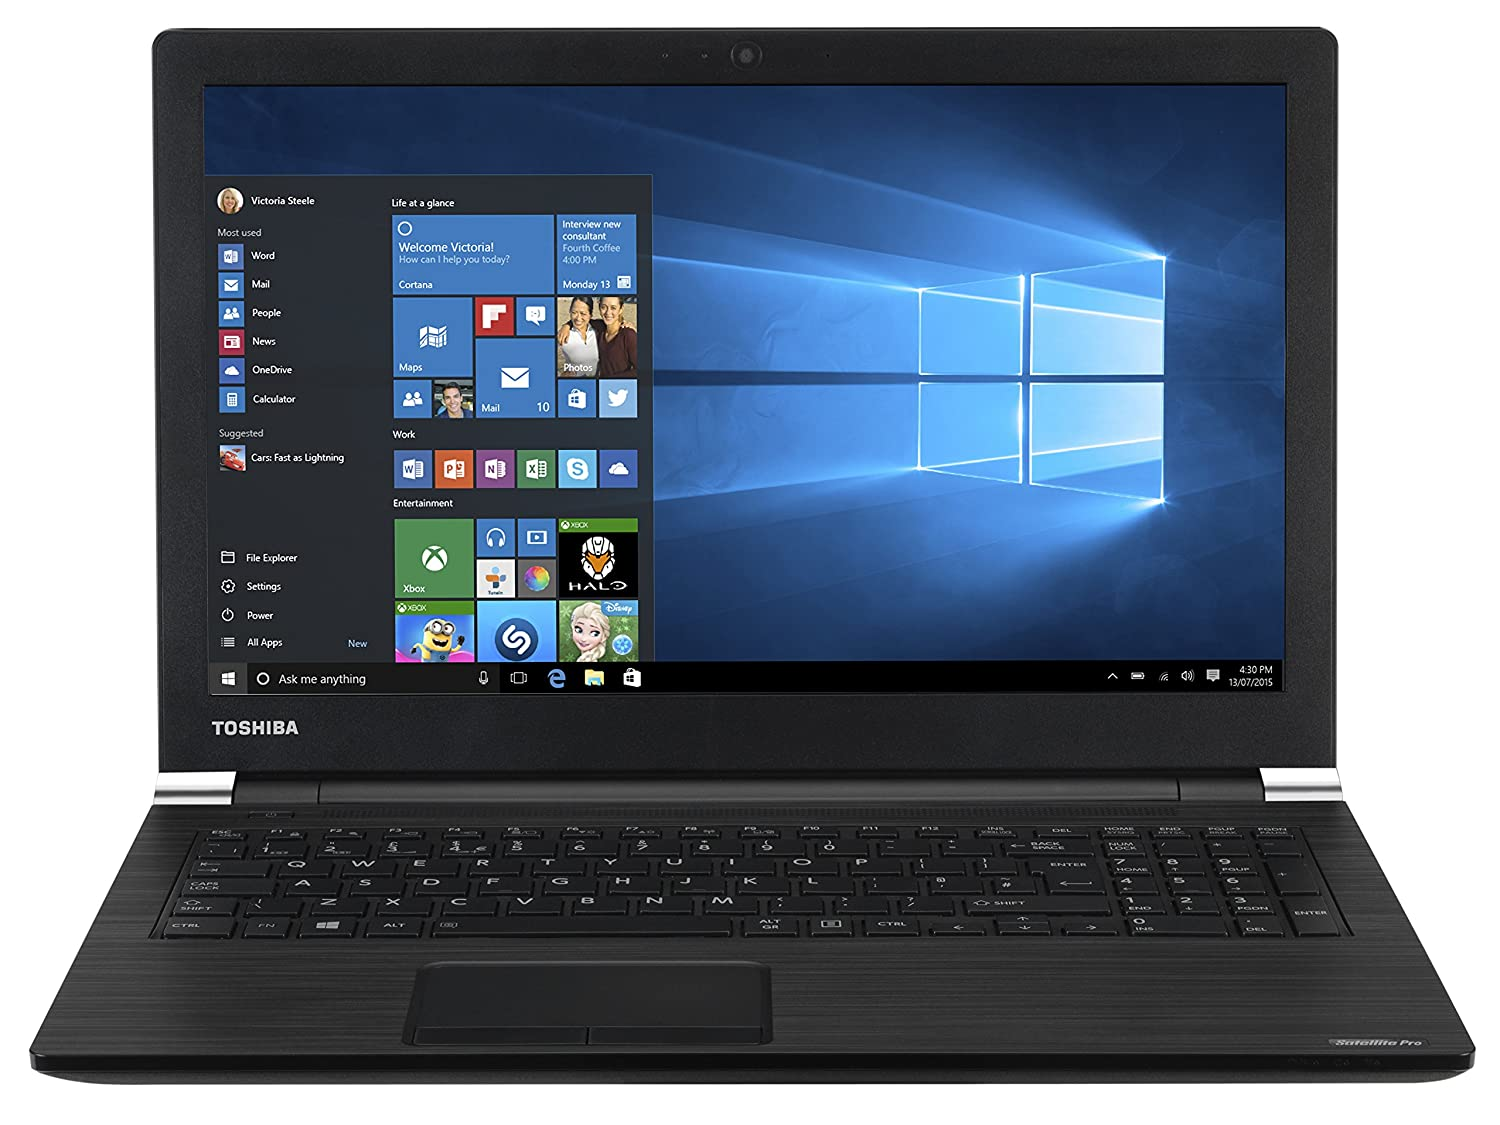 TOSHIBA SATELLITE PRO A50-A SYSTEM WINDOWS 8 DRIVER